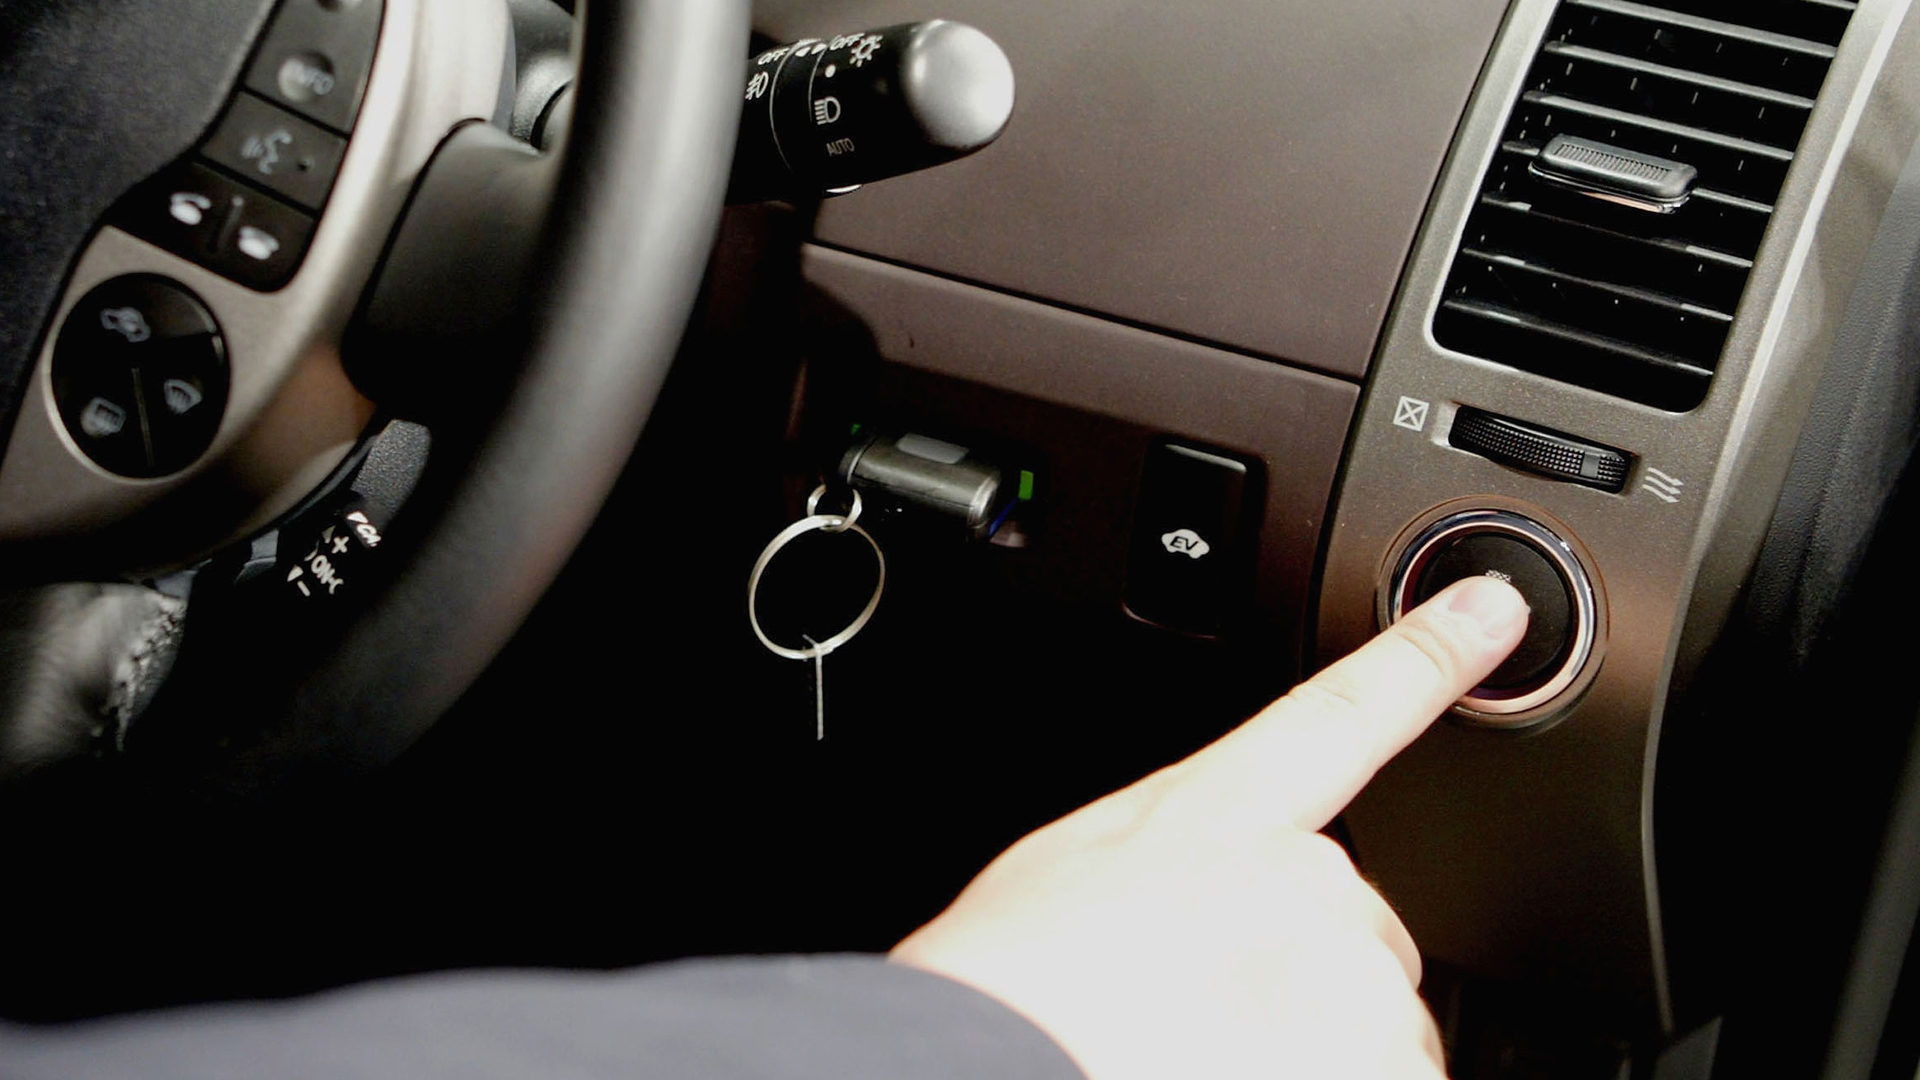 A keyless ignition button is seen in a file photo. (Credit: Koichi Kamoshida/Getty Images)